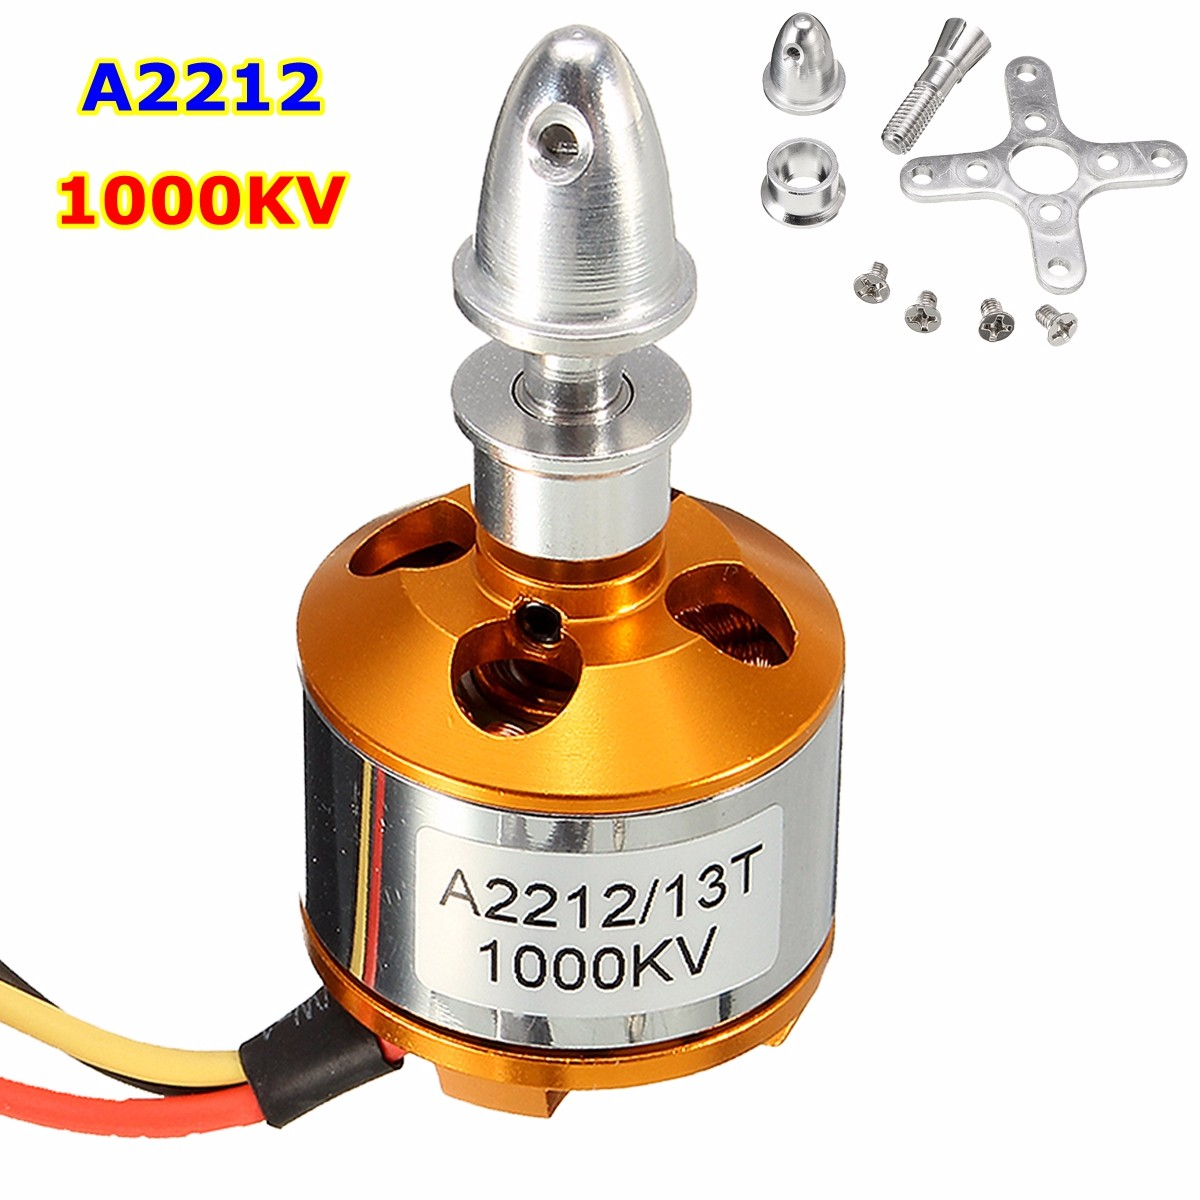 1000Kv A2212 Brushless Drone Outrunner Motor For Aircraft Helicopter Quadcopter x team xto 2212 850kv forward outrunner brushless motor for helicopter silver